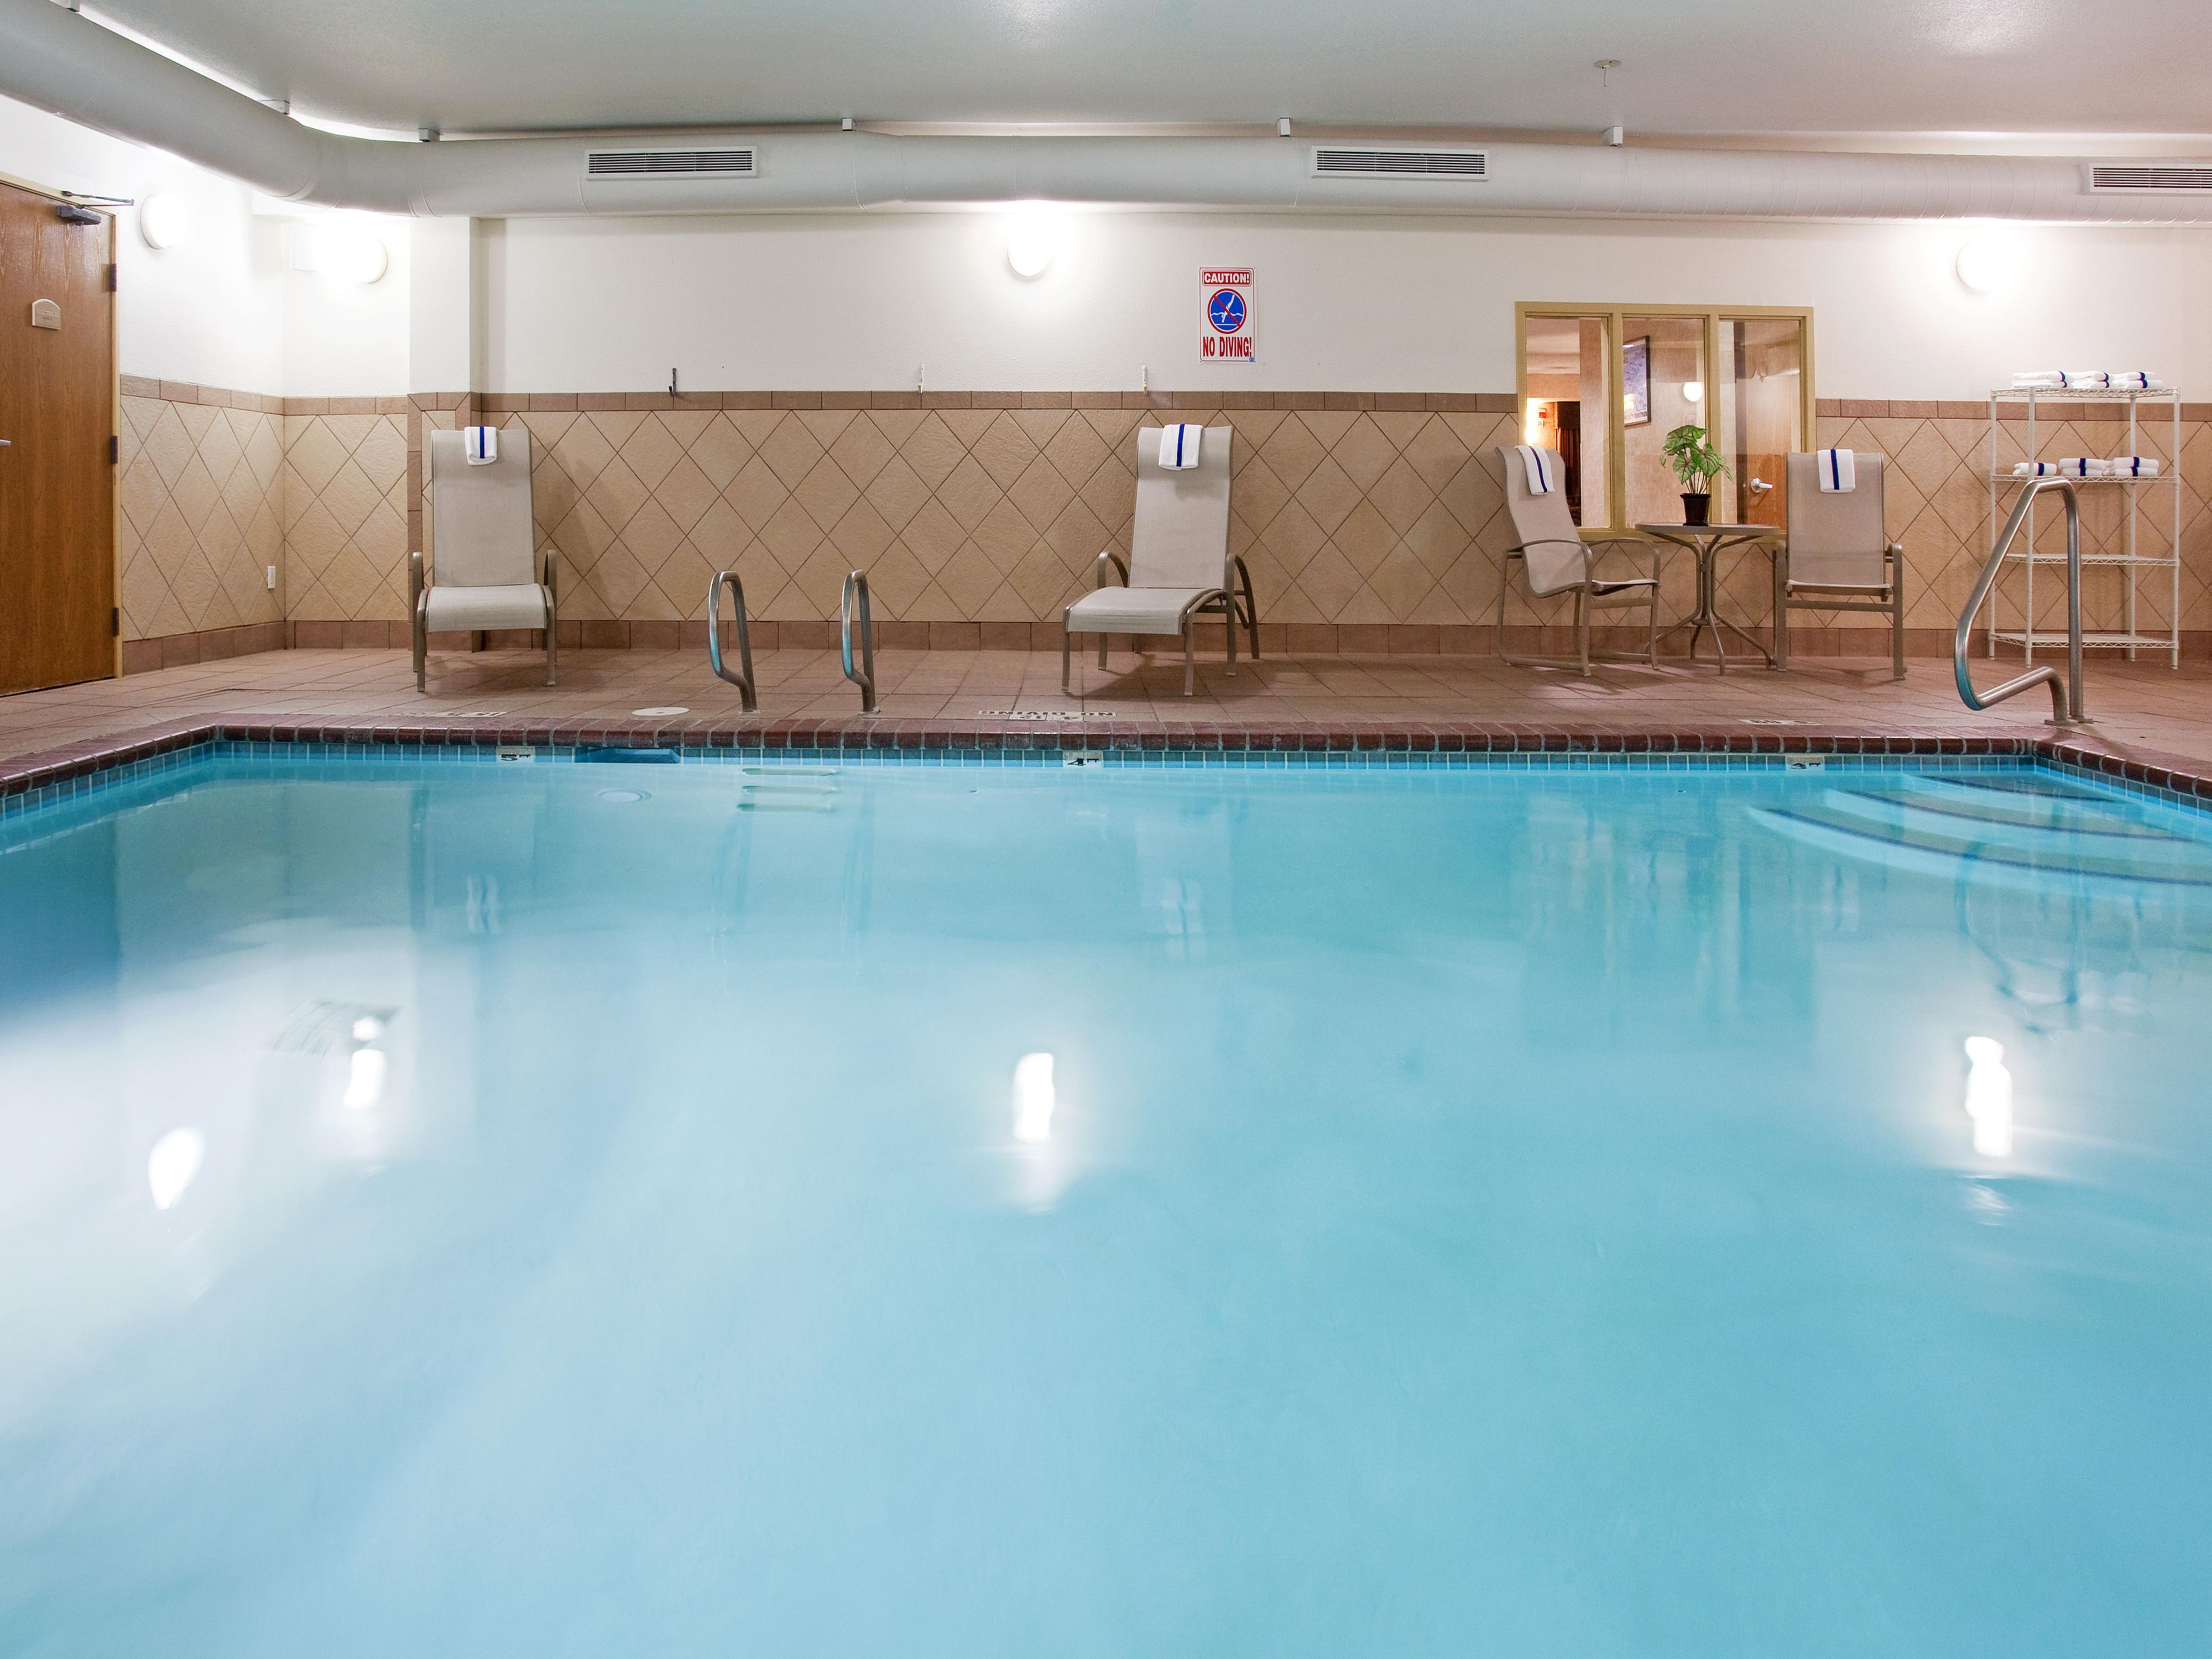 Indoor heated Swimming Pool & Whirlpool Spa, open 24 hours